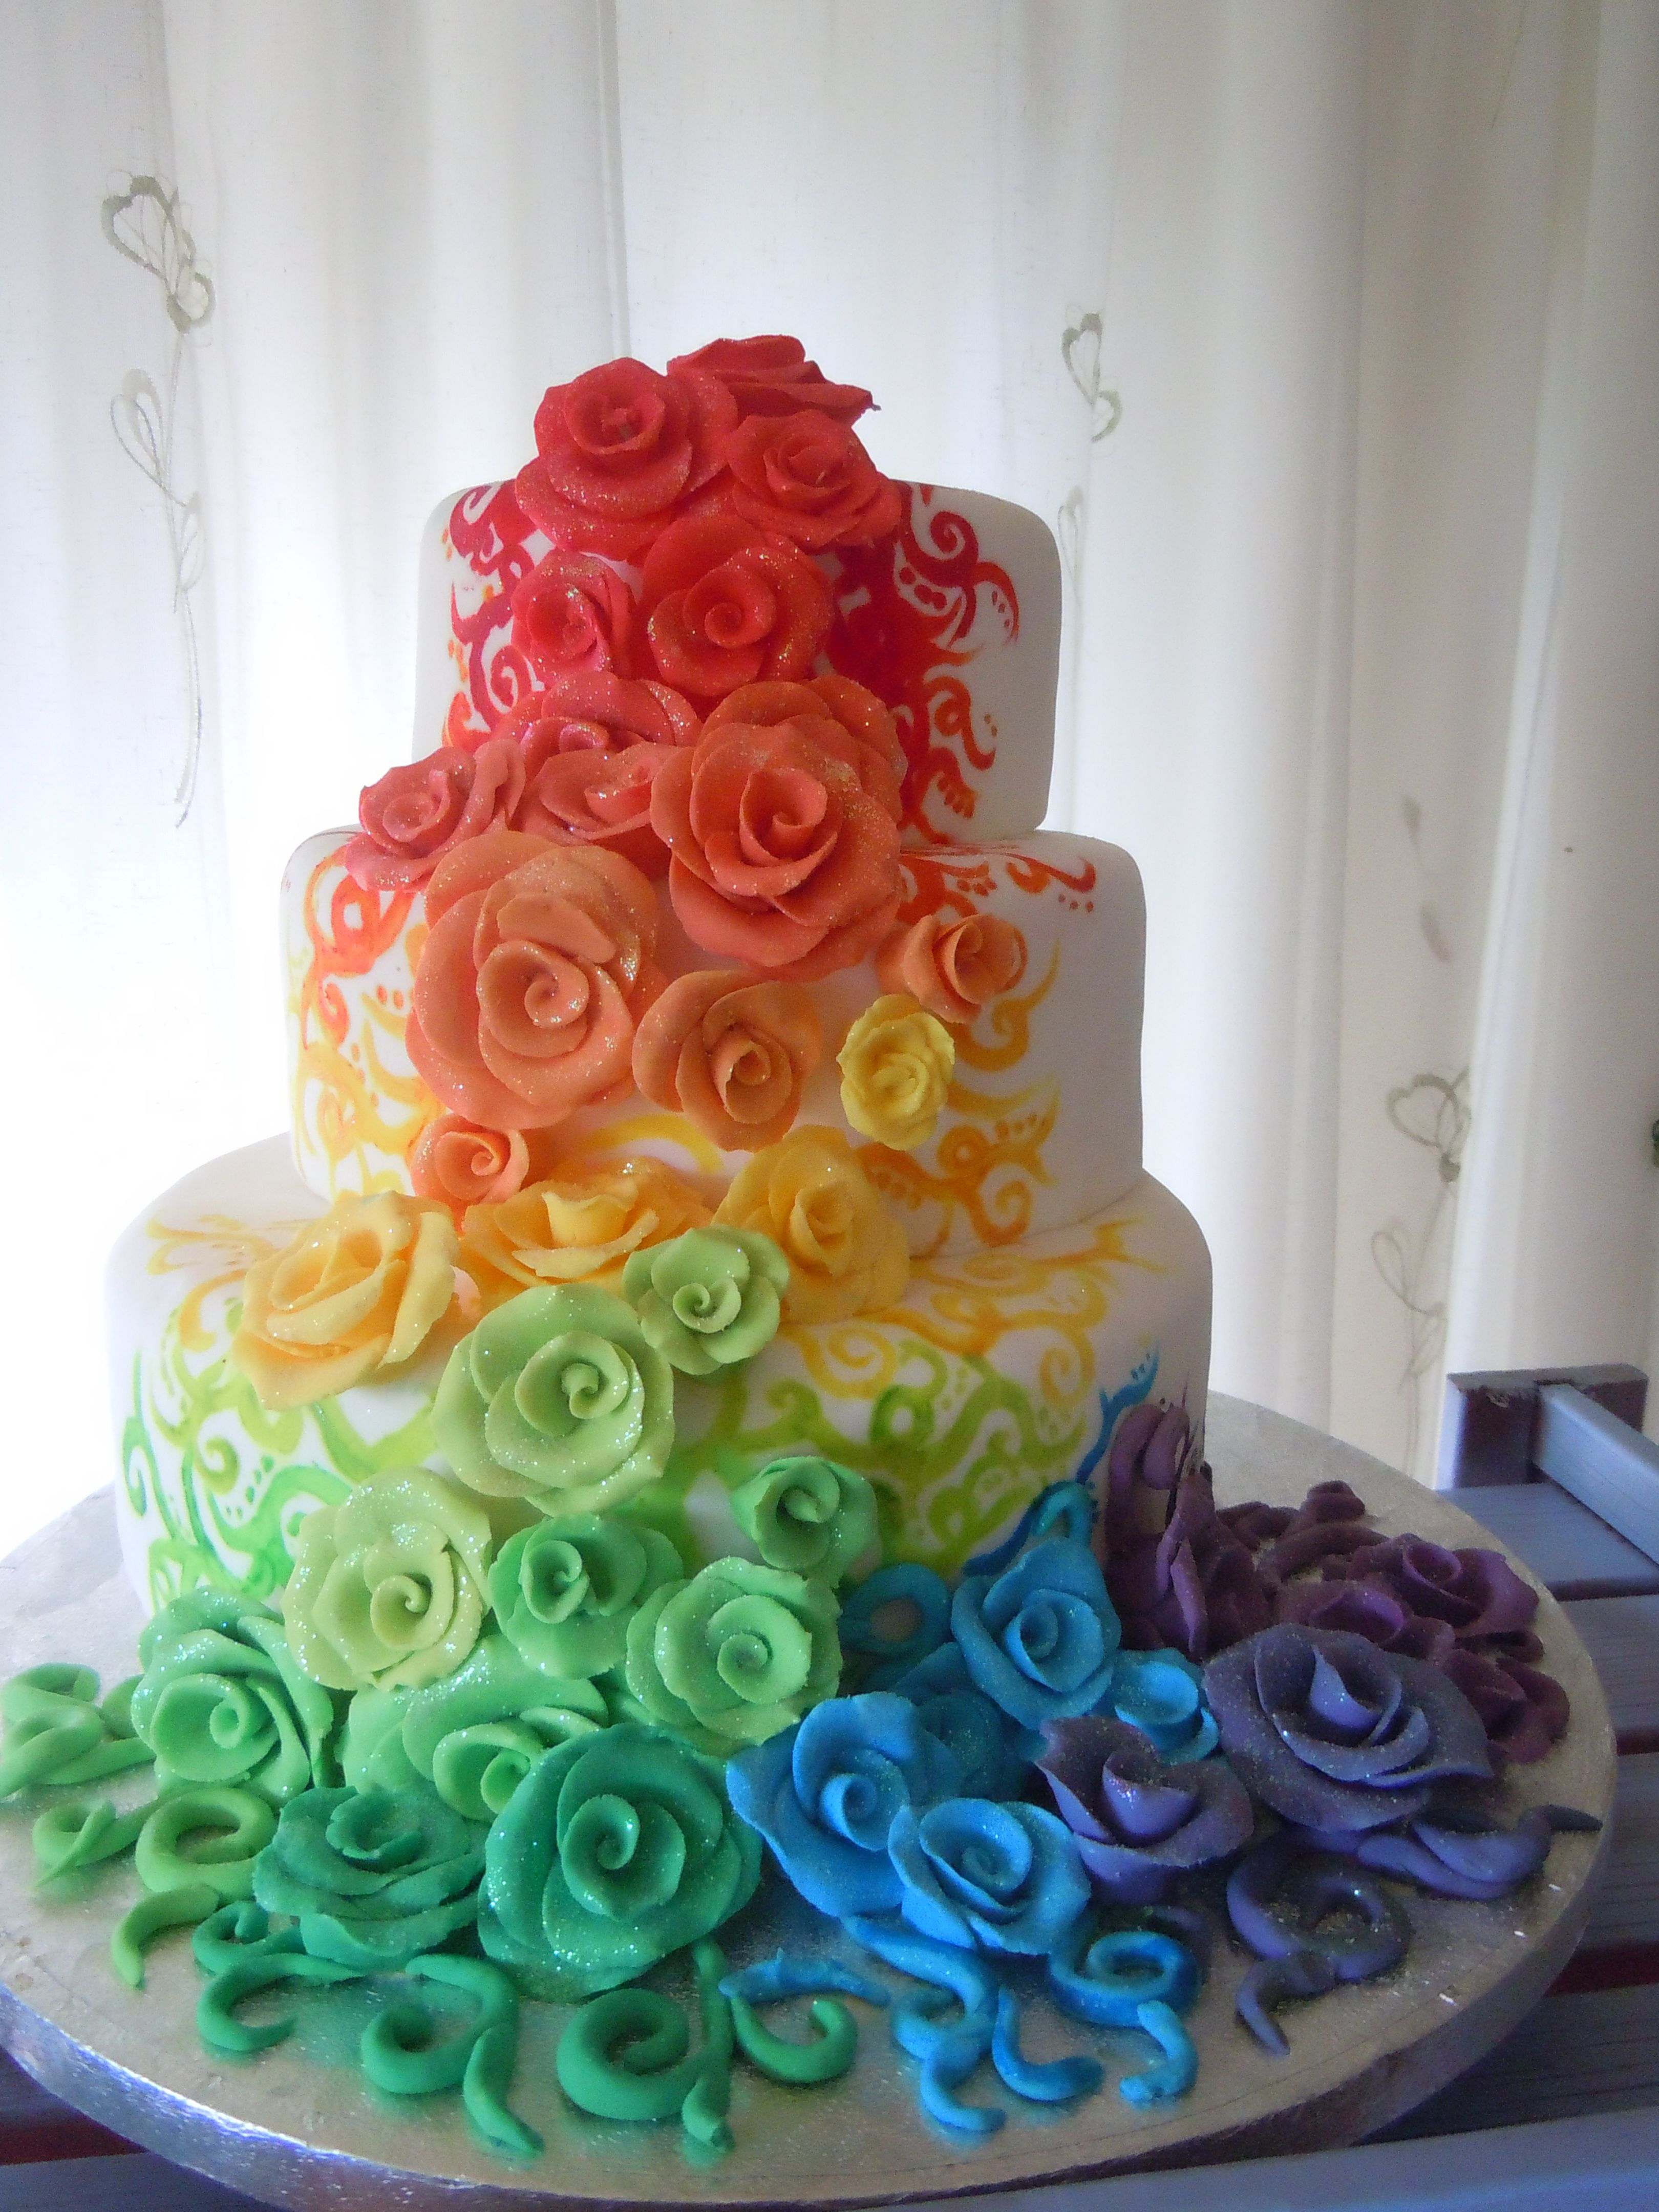 I want a rainbow wedding cake so badly or a colorful one at least